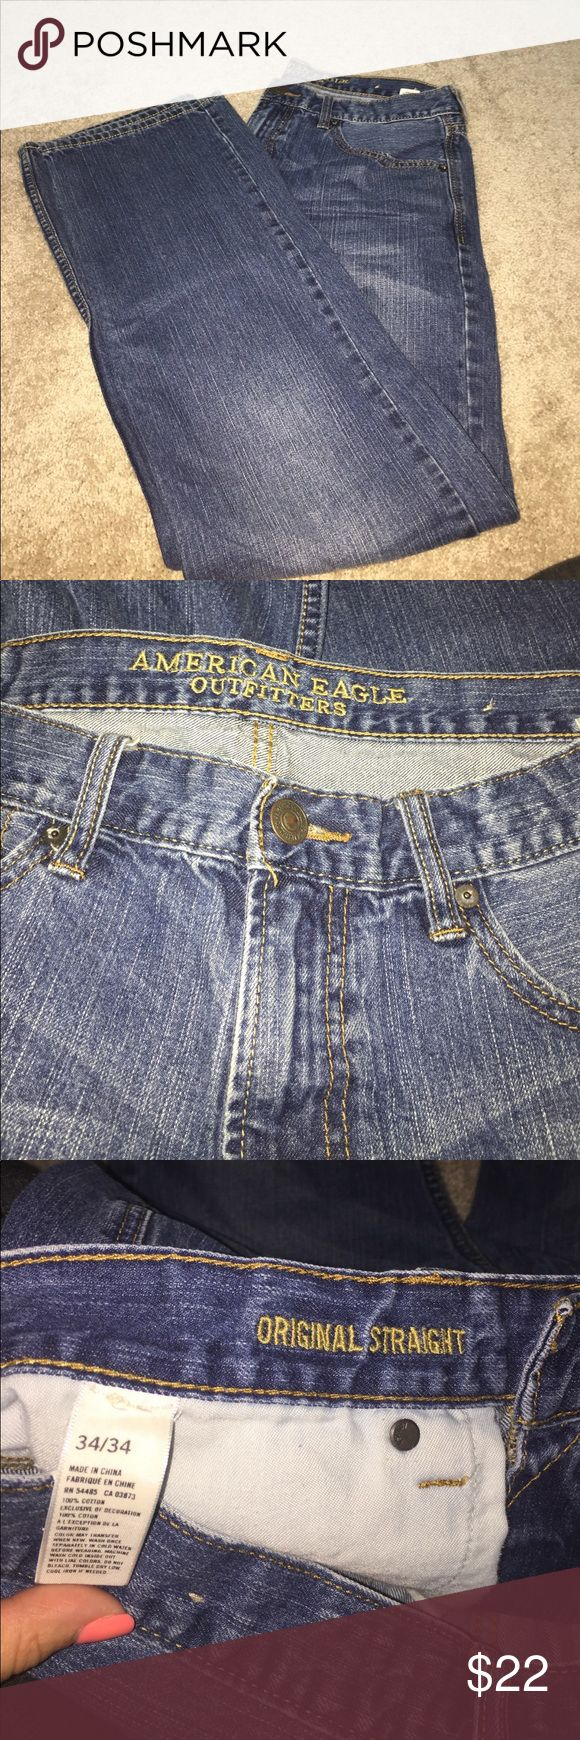 American eagle jeans 34/34 original straight American eagle jeans 34/34 original straight men's jeans like new condition American Eagle Outfitters Jeans Straight